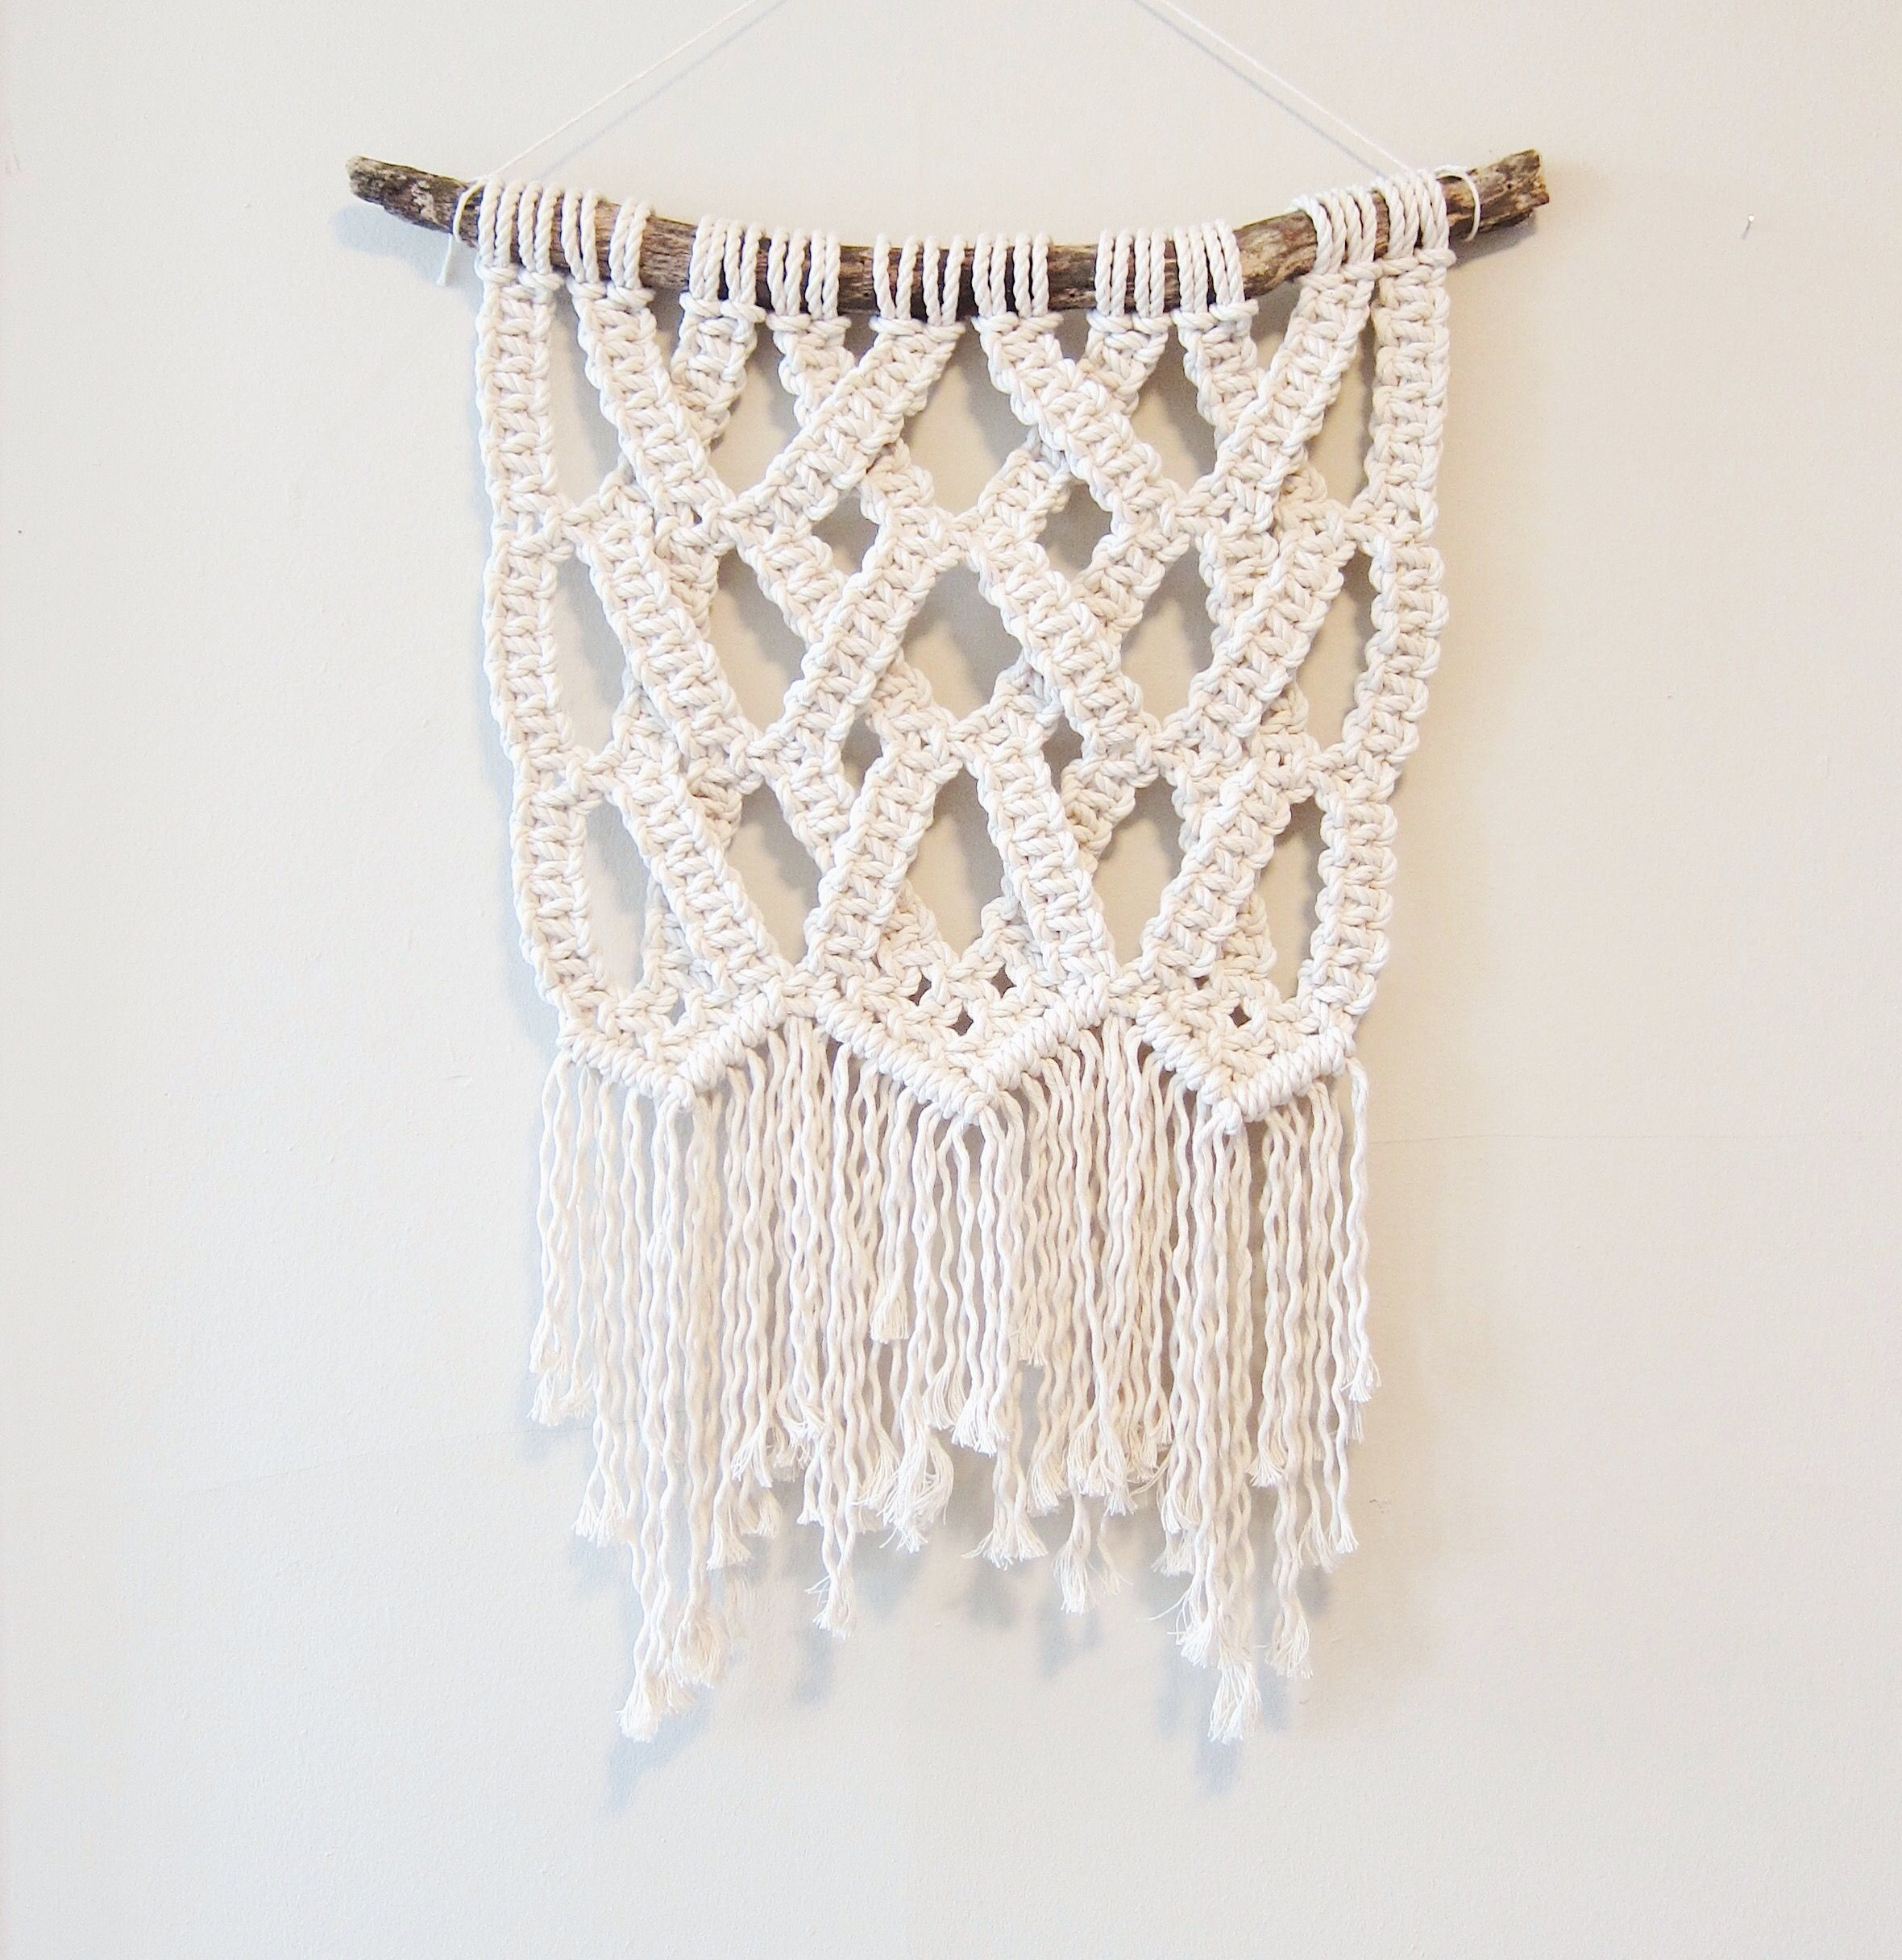 Modern Macrame Wall Hanging by Northern Sun Textiles: www.etsy.com/ca/shop/NorthernSunTextiles